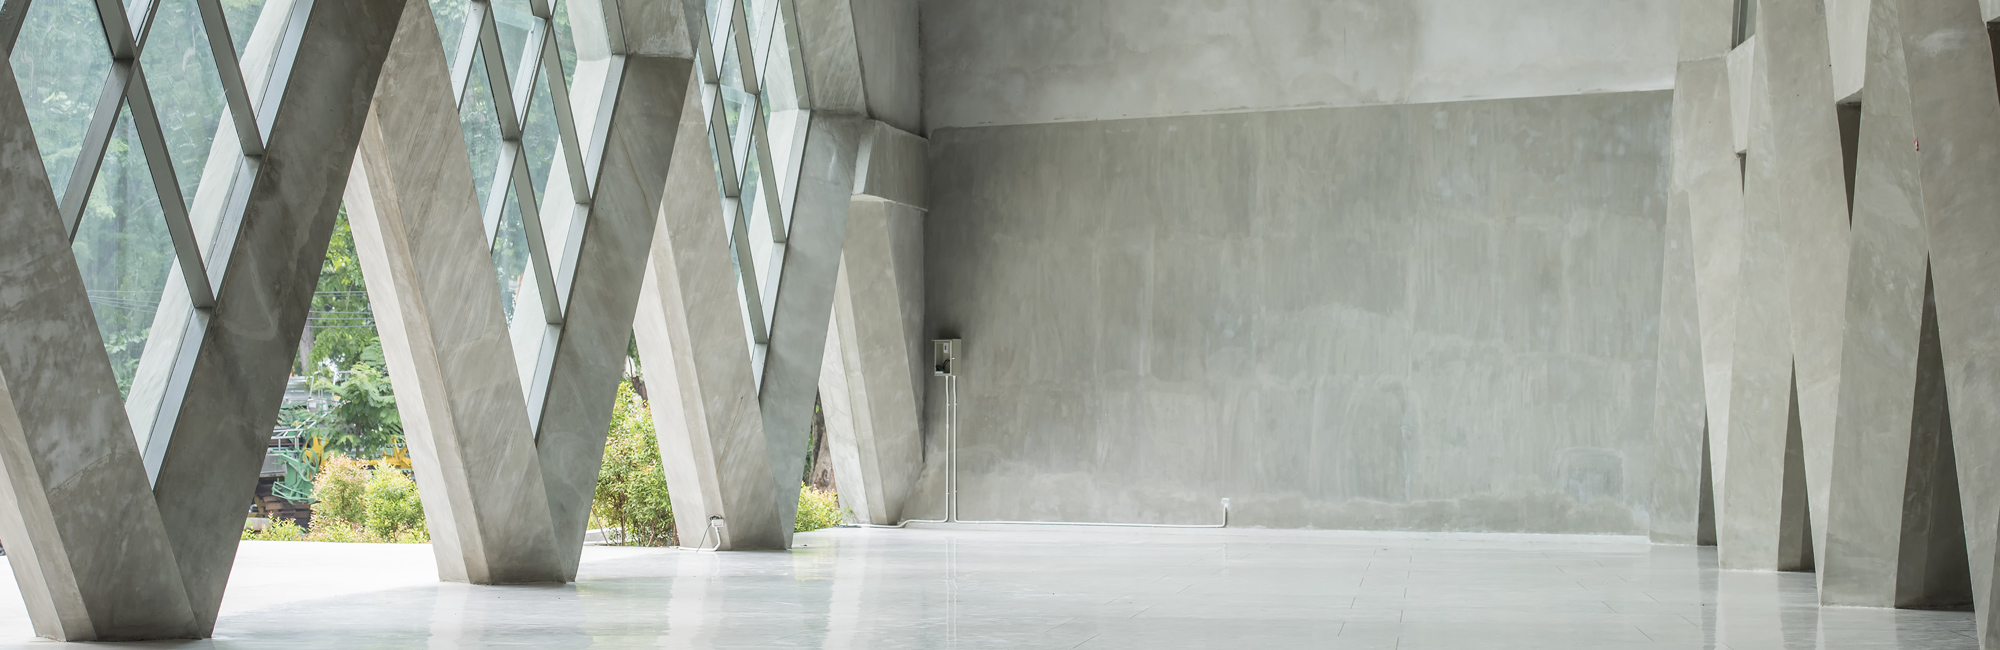 Specializing in long term durable concrete & polymer flooring systems